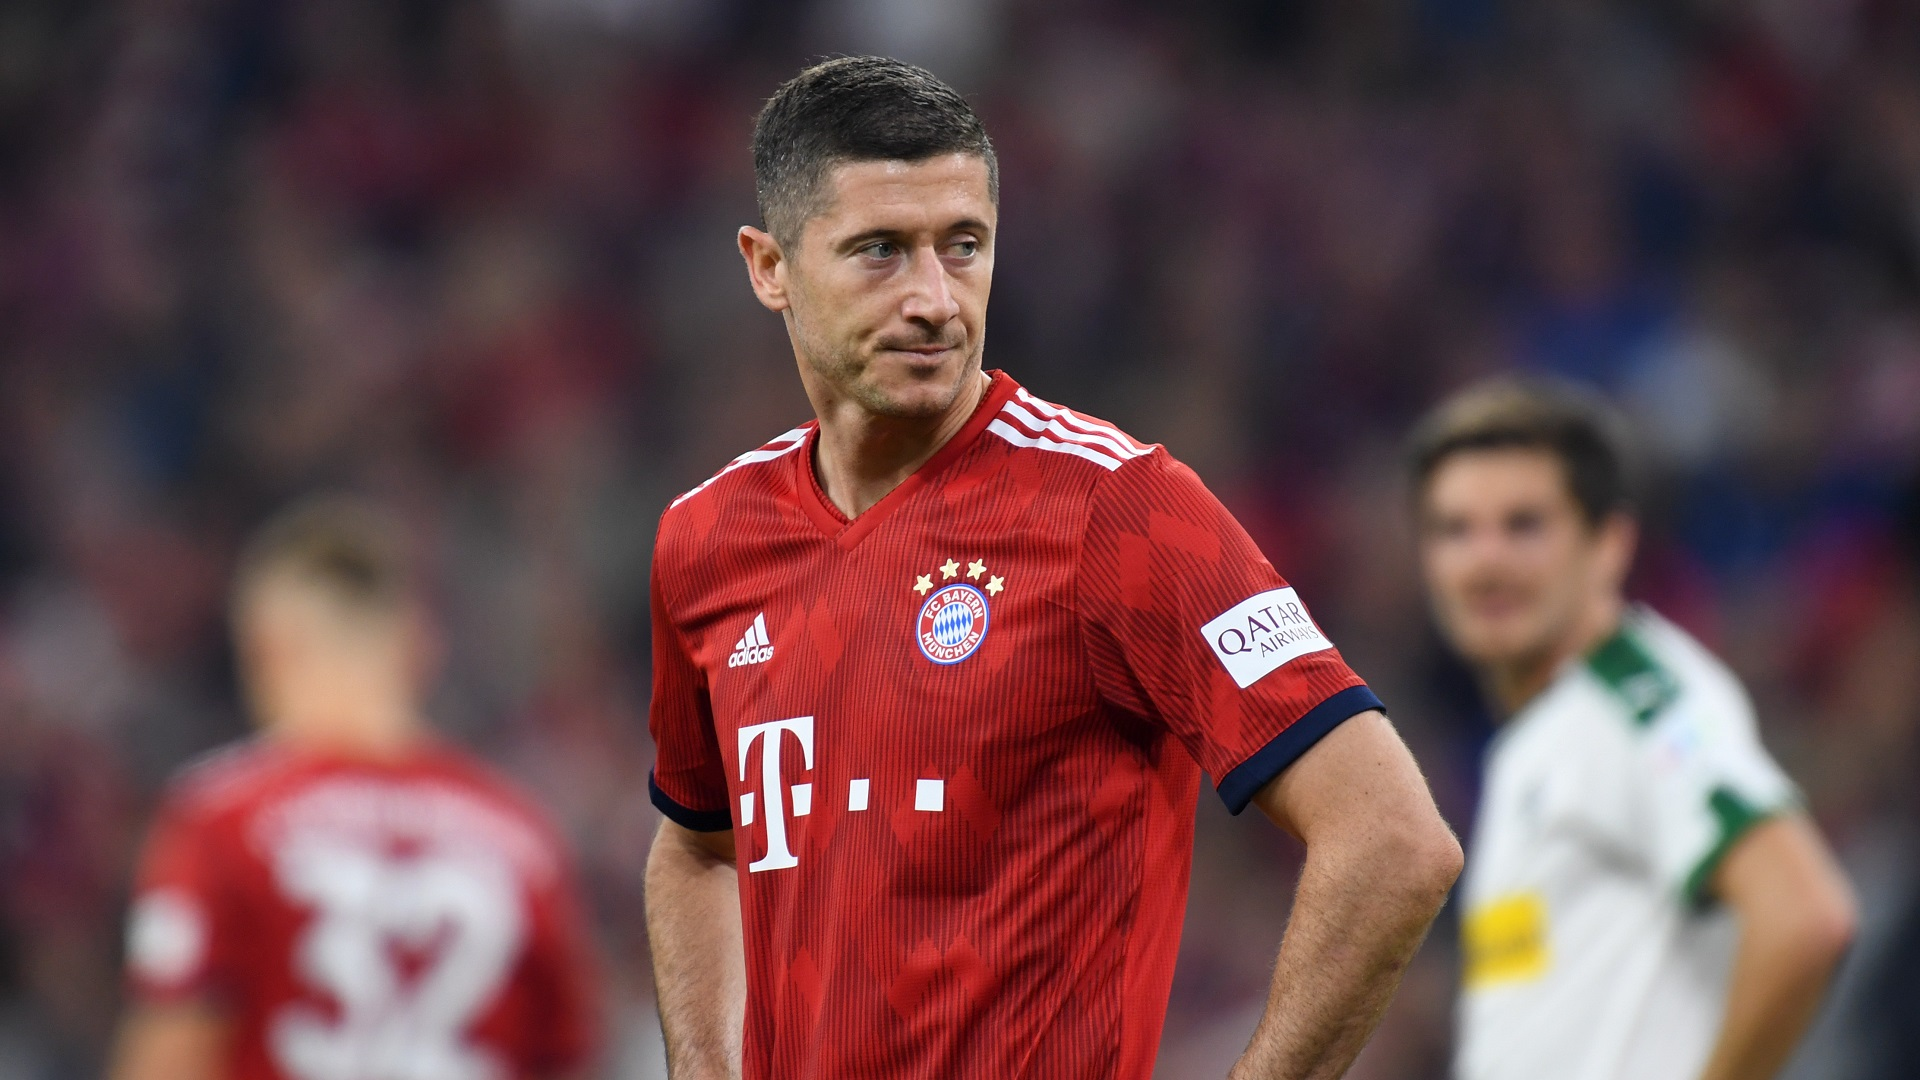 Kovac Focused On Getting Bayern Back On Track Amid Sack Rumours